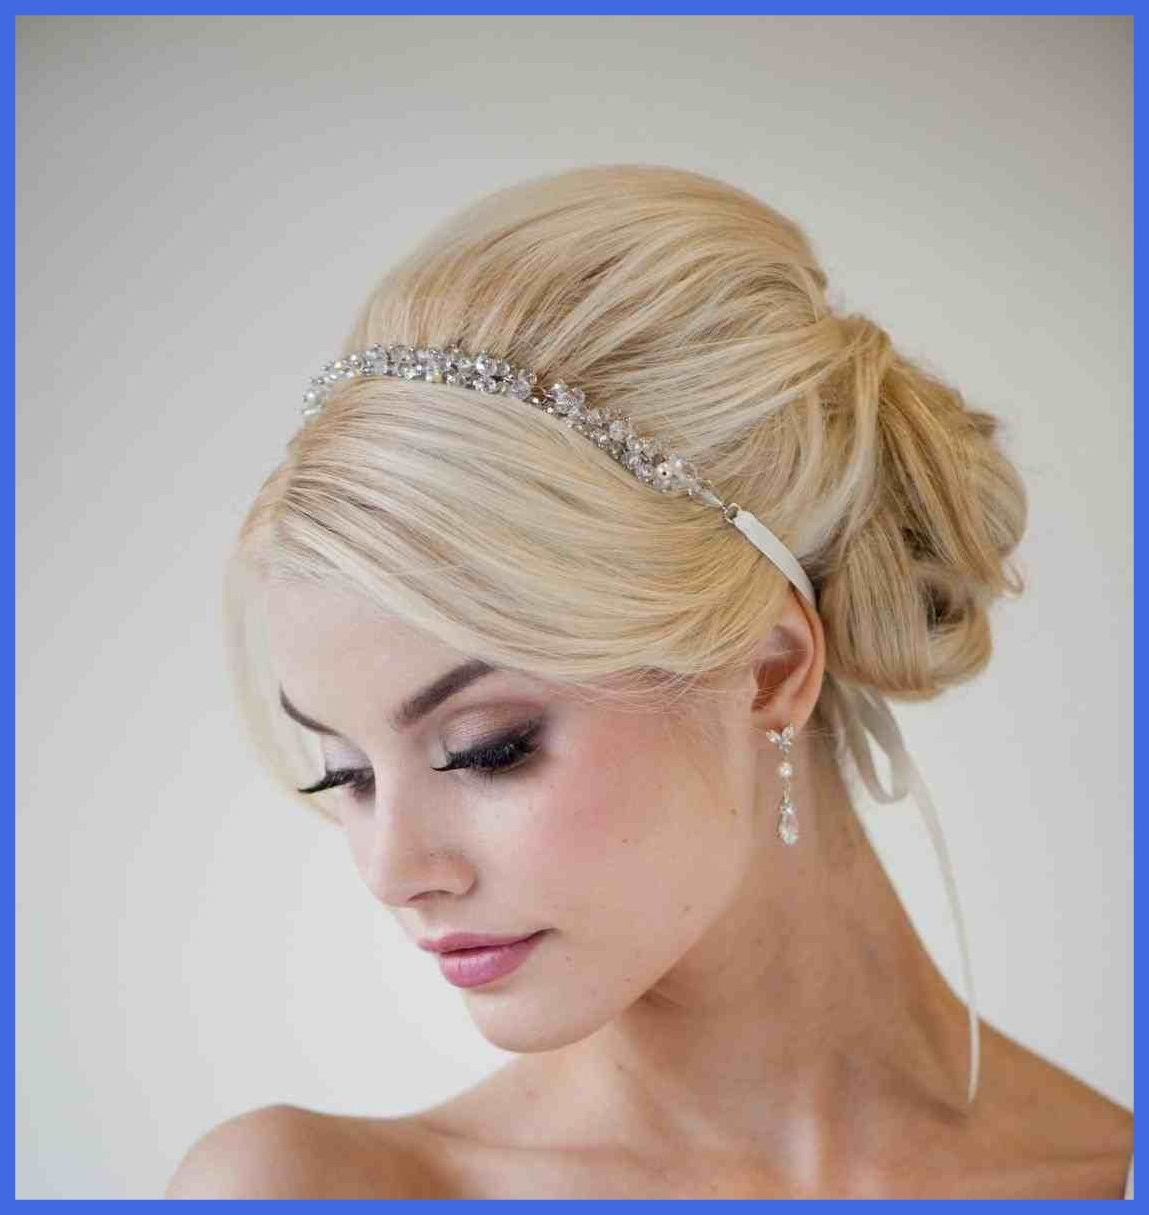 Inspiring Wedding Hairstyles Half Up Down With Veil The Big River For Favorite Wedding Hairstyles With Headband And Veil (Gallery 8 of 15)